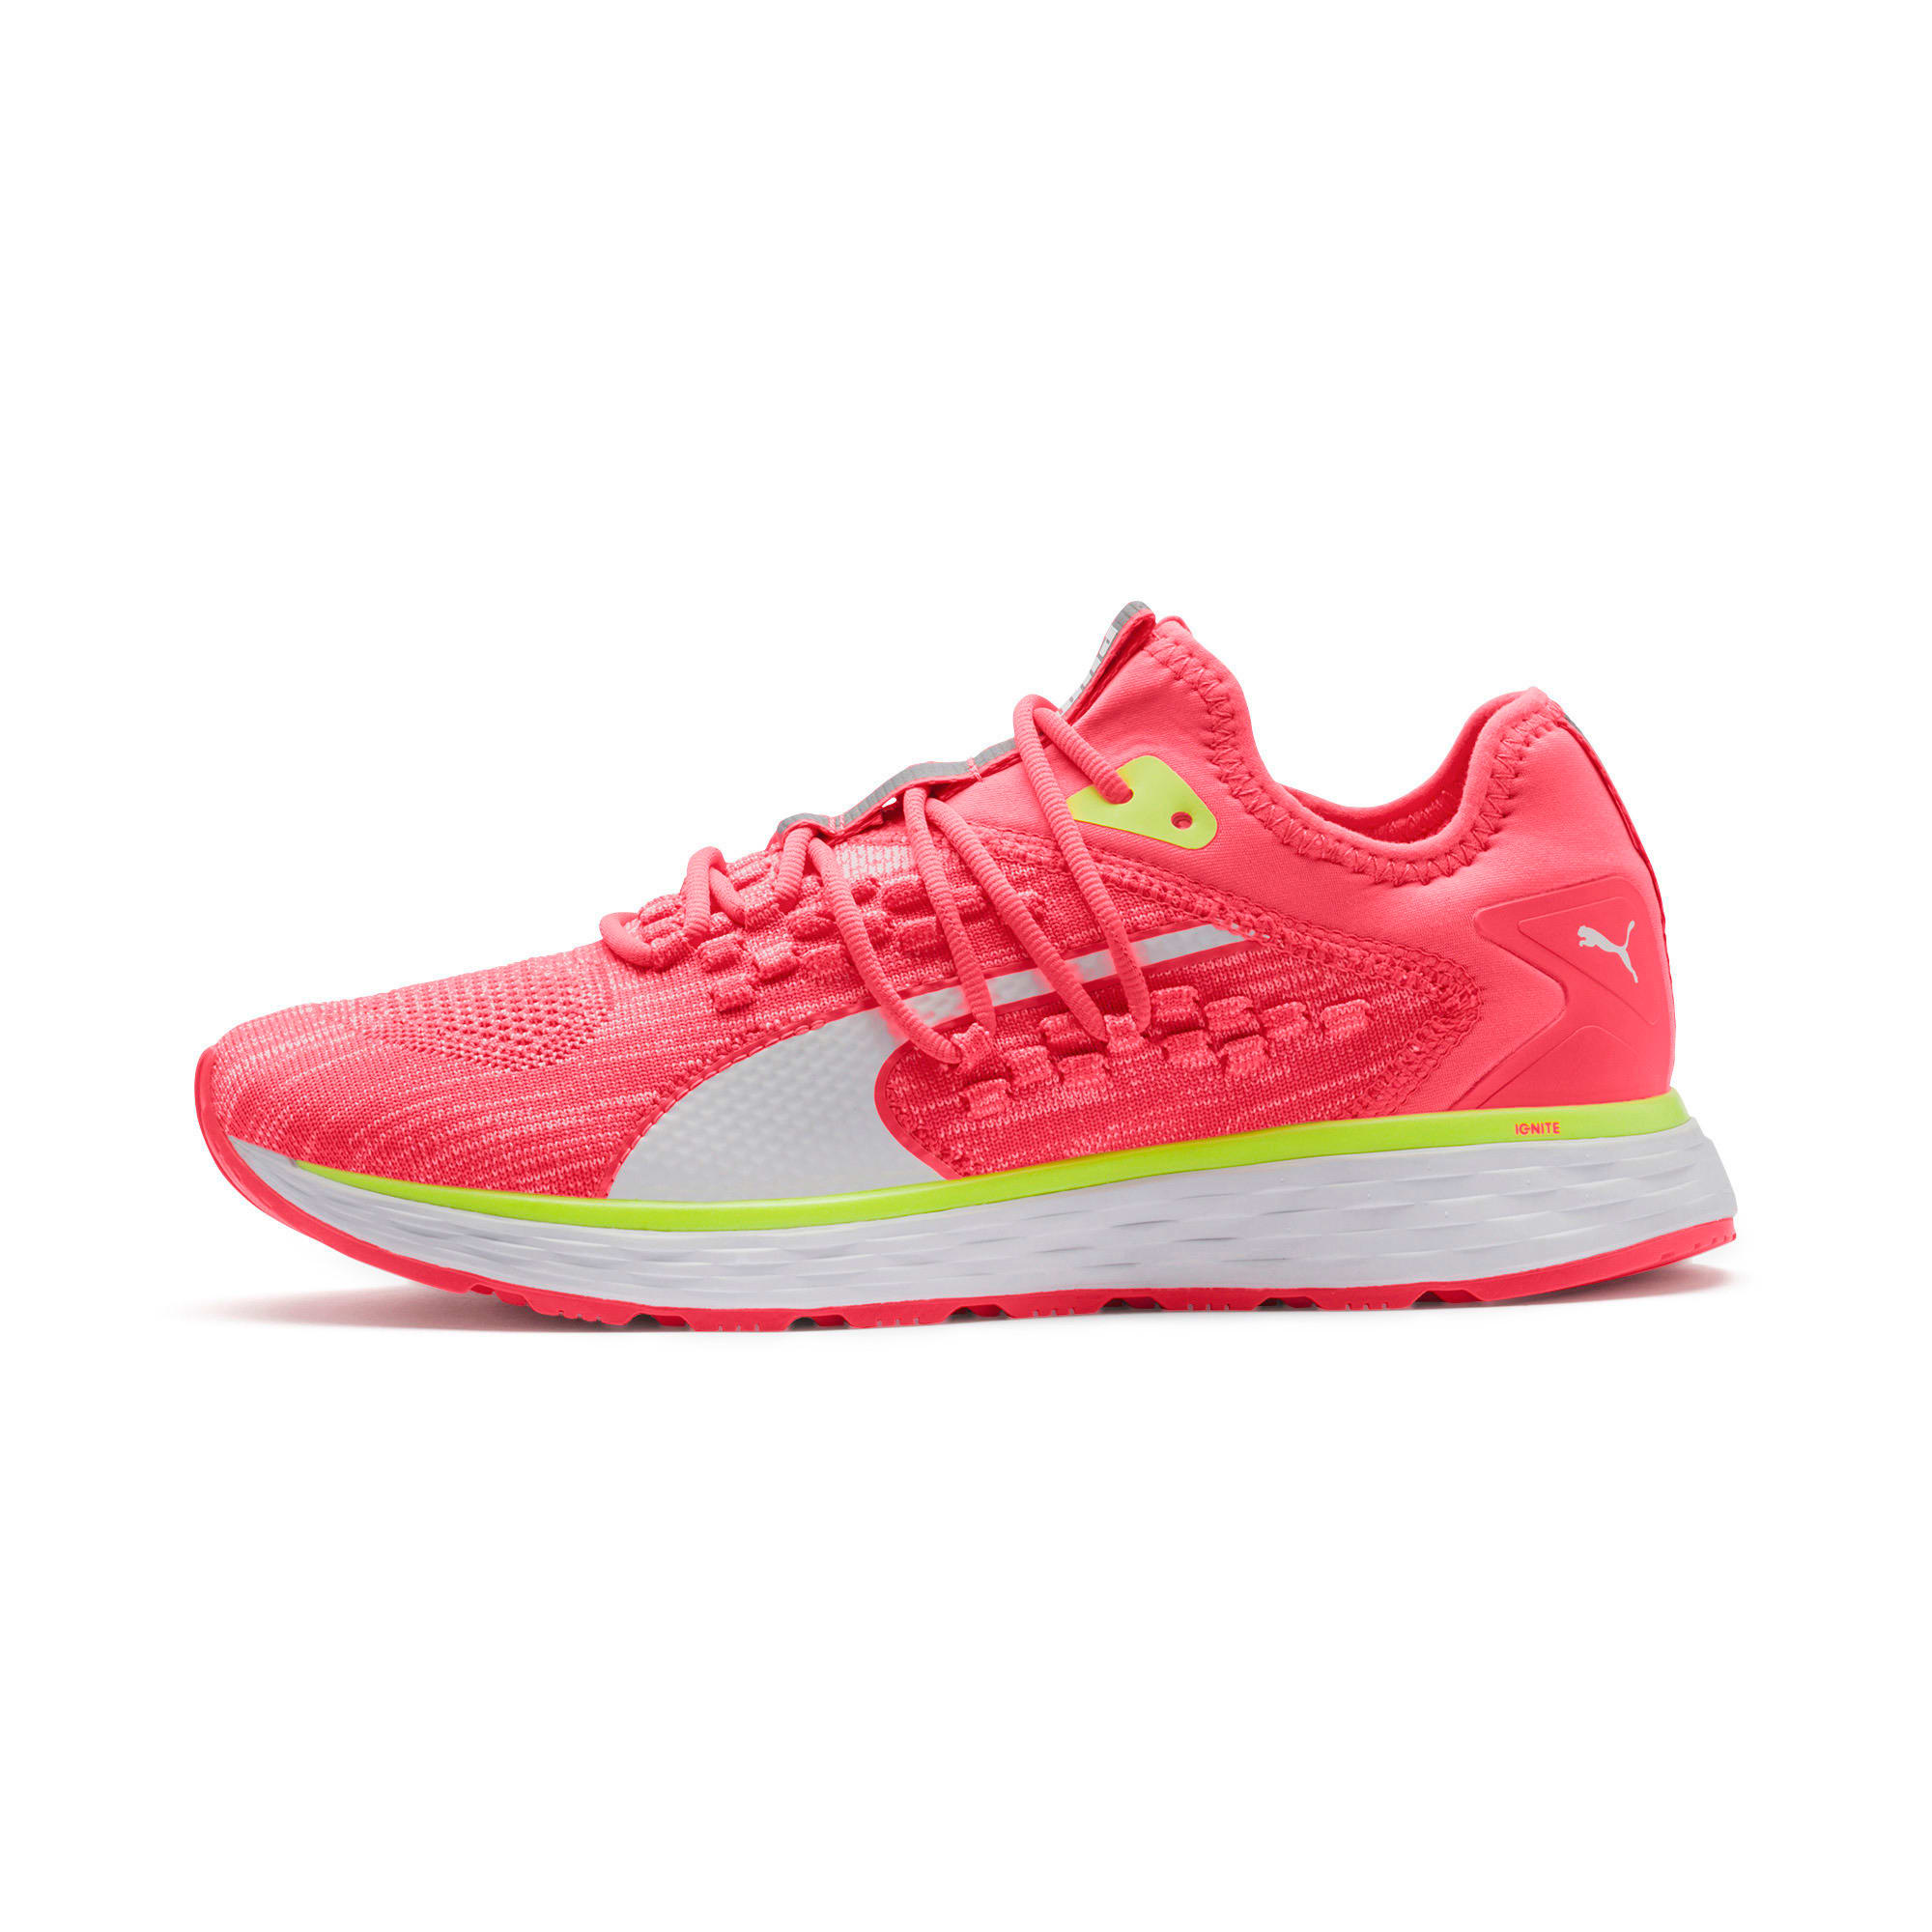 Thumbnail 1 of SPEED 600 FUSEFIT Women's Running Shoes, Pink Alert-Puma White, medium